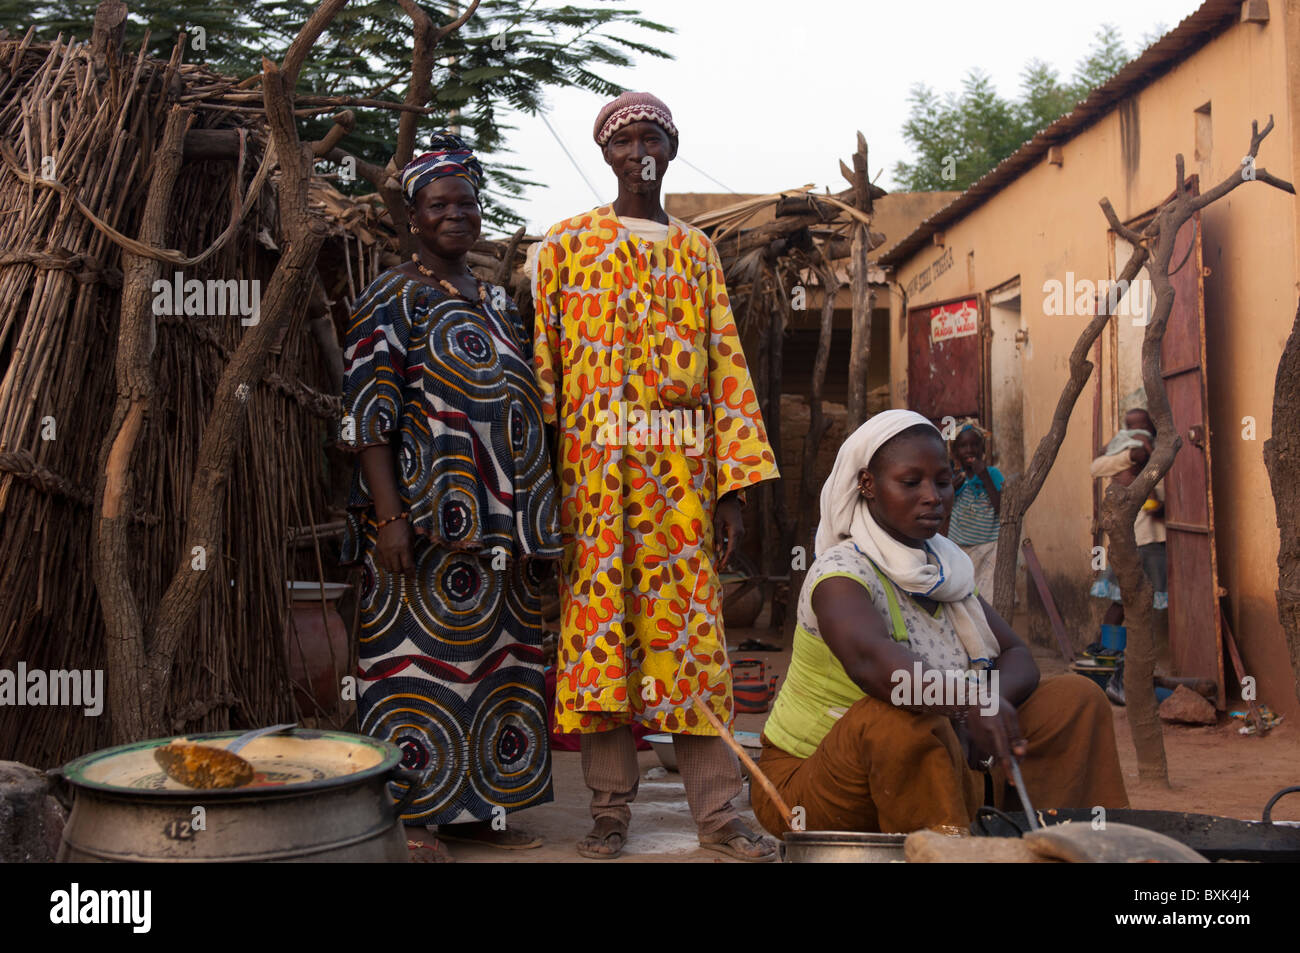 Owners of a primitive open 'restaurant:' in the village of Saye. Segou Region, Mali. - Stock Image